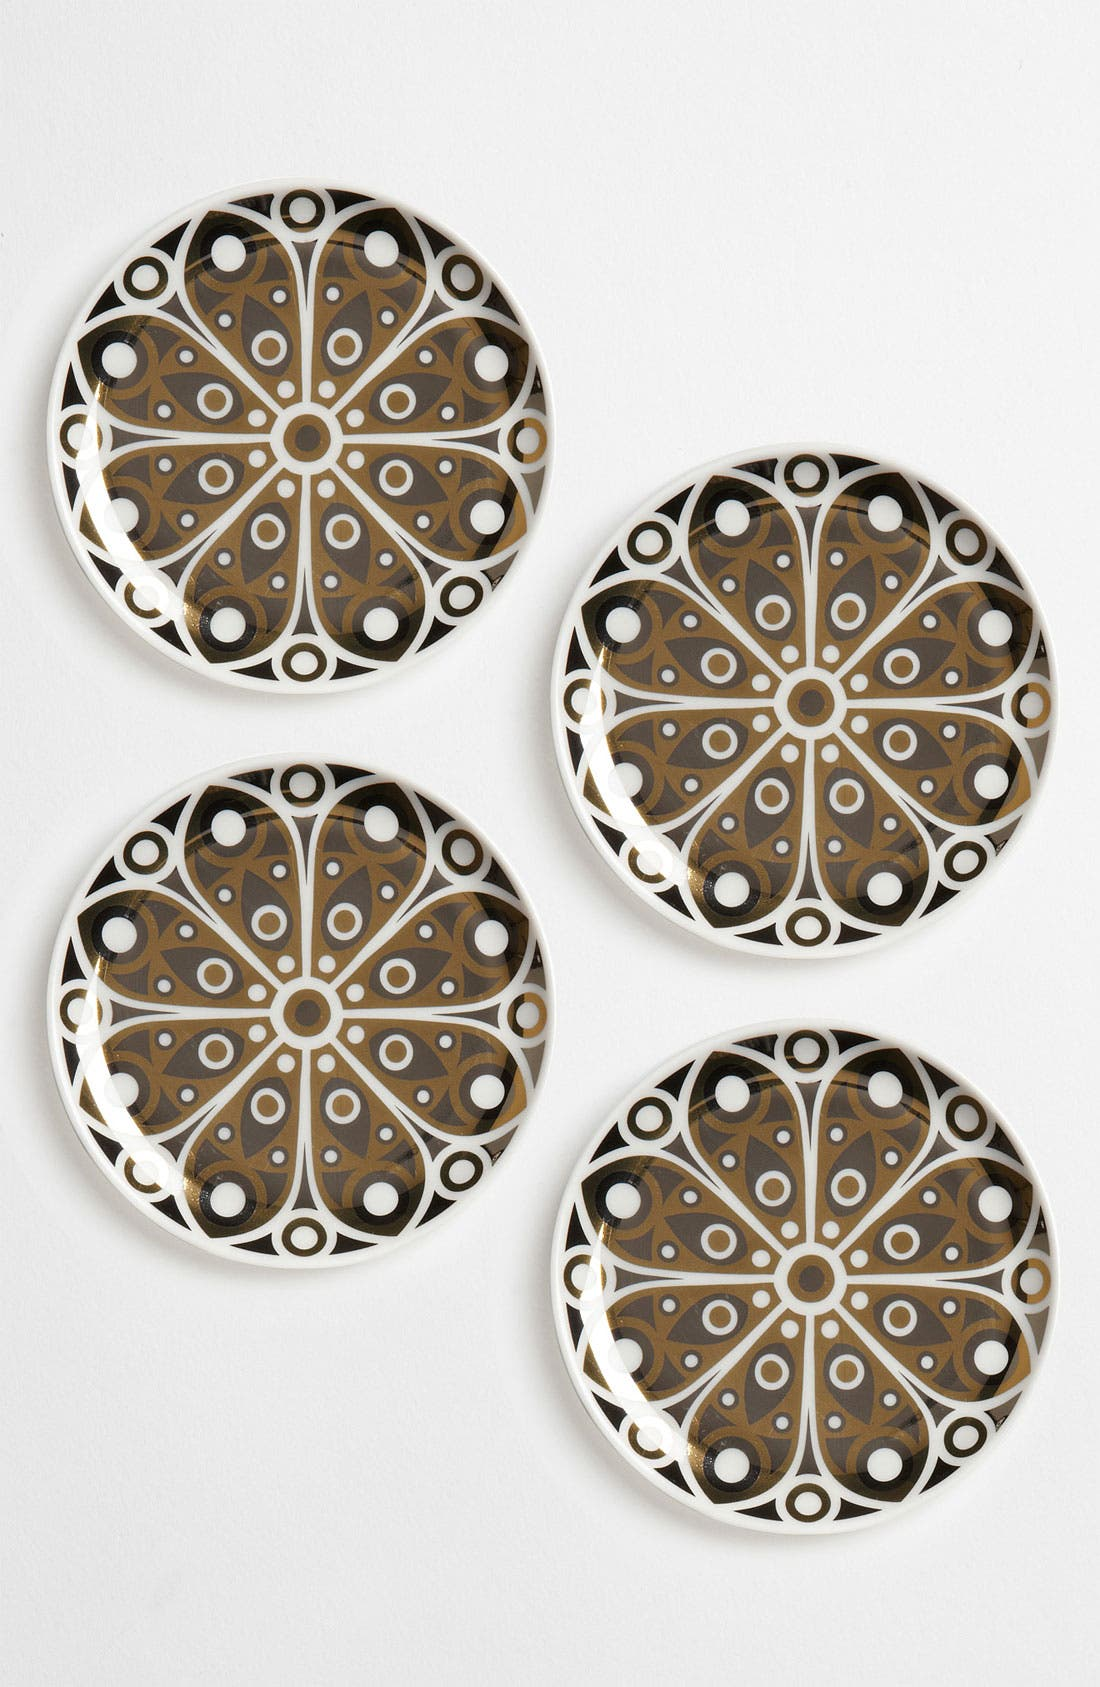 Main Image - Jonathan Adler 'Peacock' Porcelain Coasters (Set of 4)